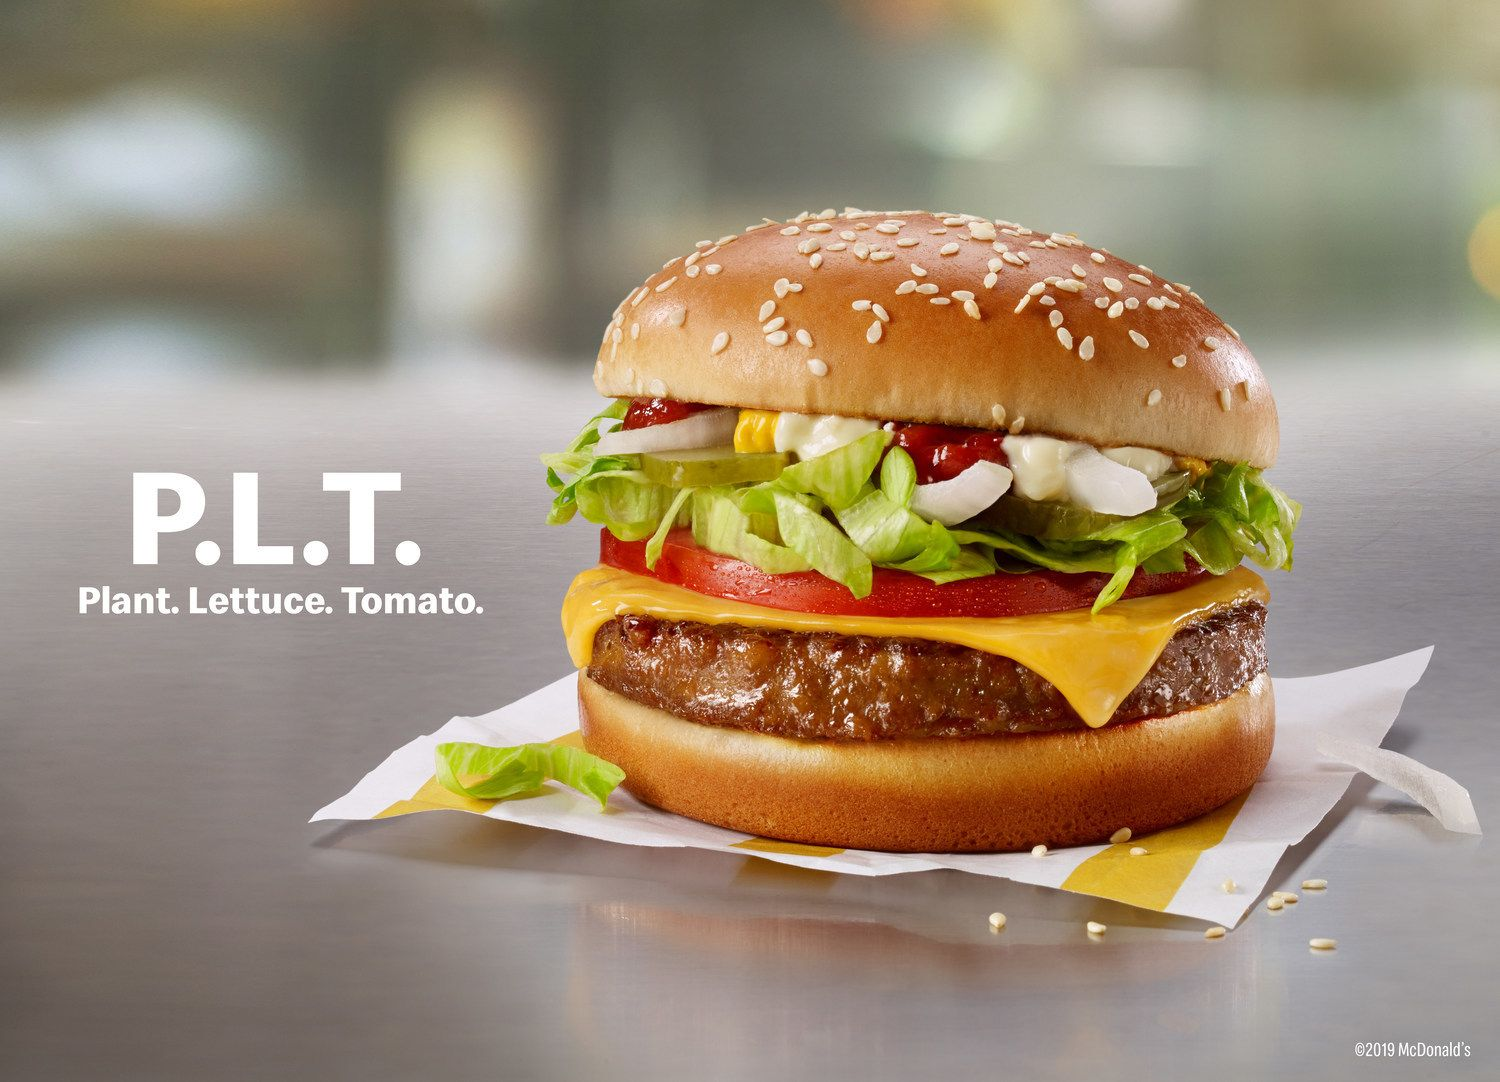 McDonald's plant-based burger trial unveiled | Inside Franchise Business